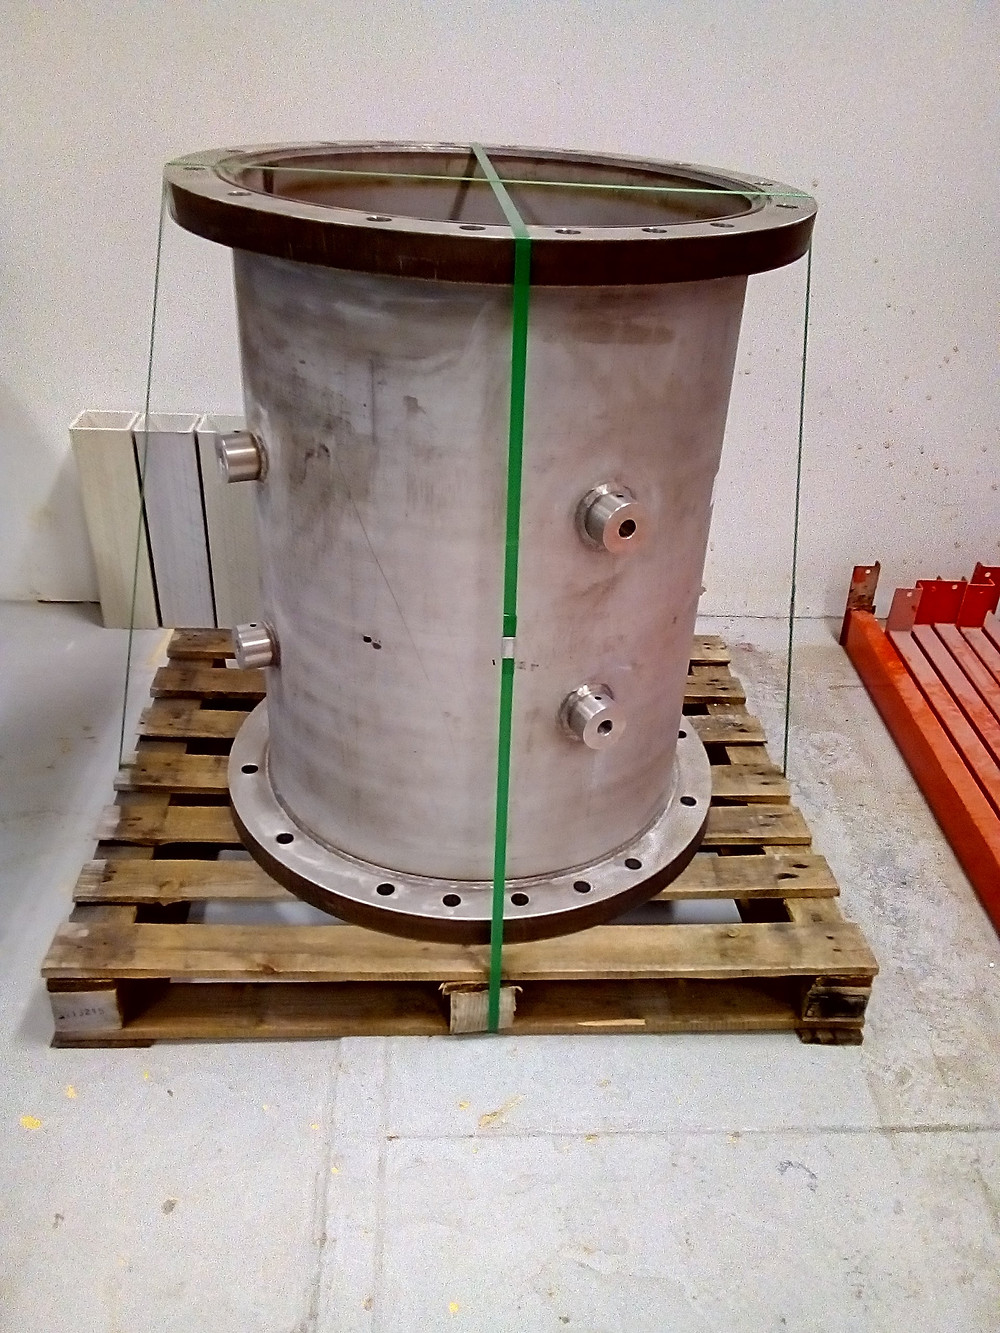 Outer shell of calibration chamber